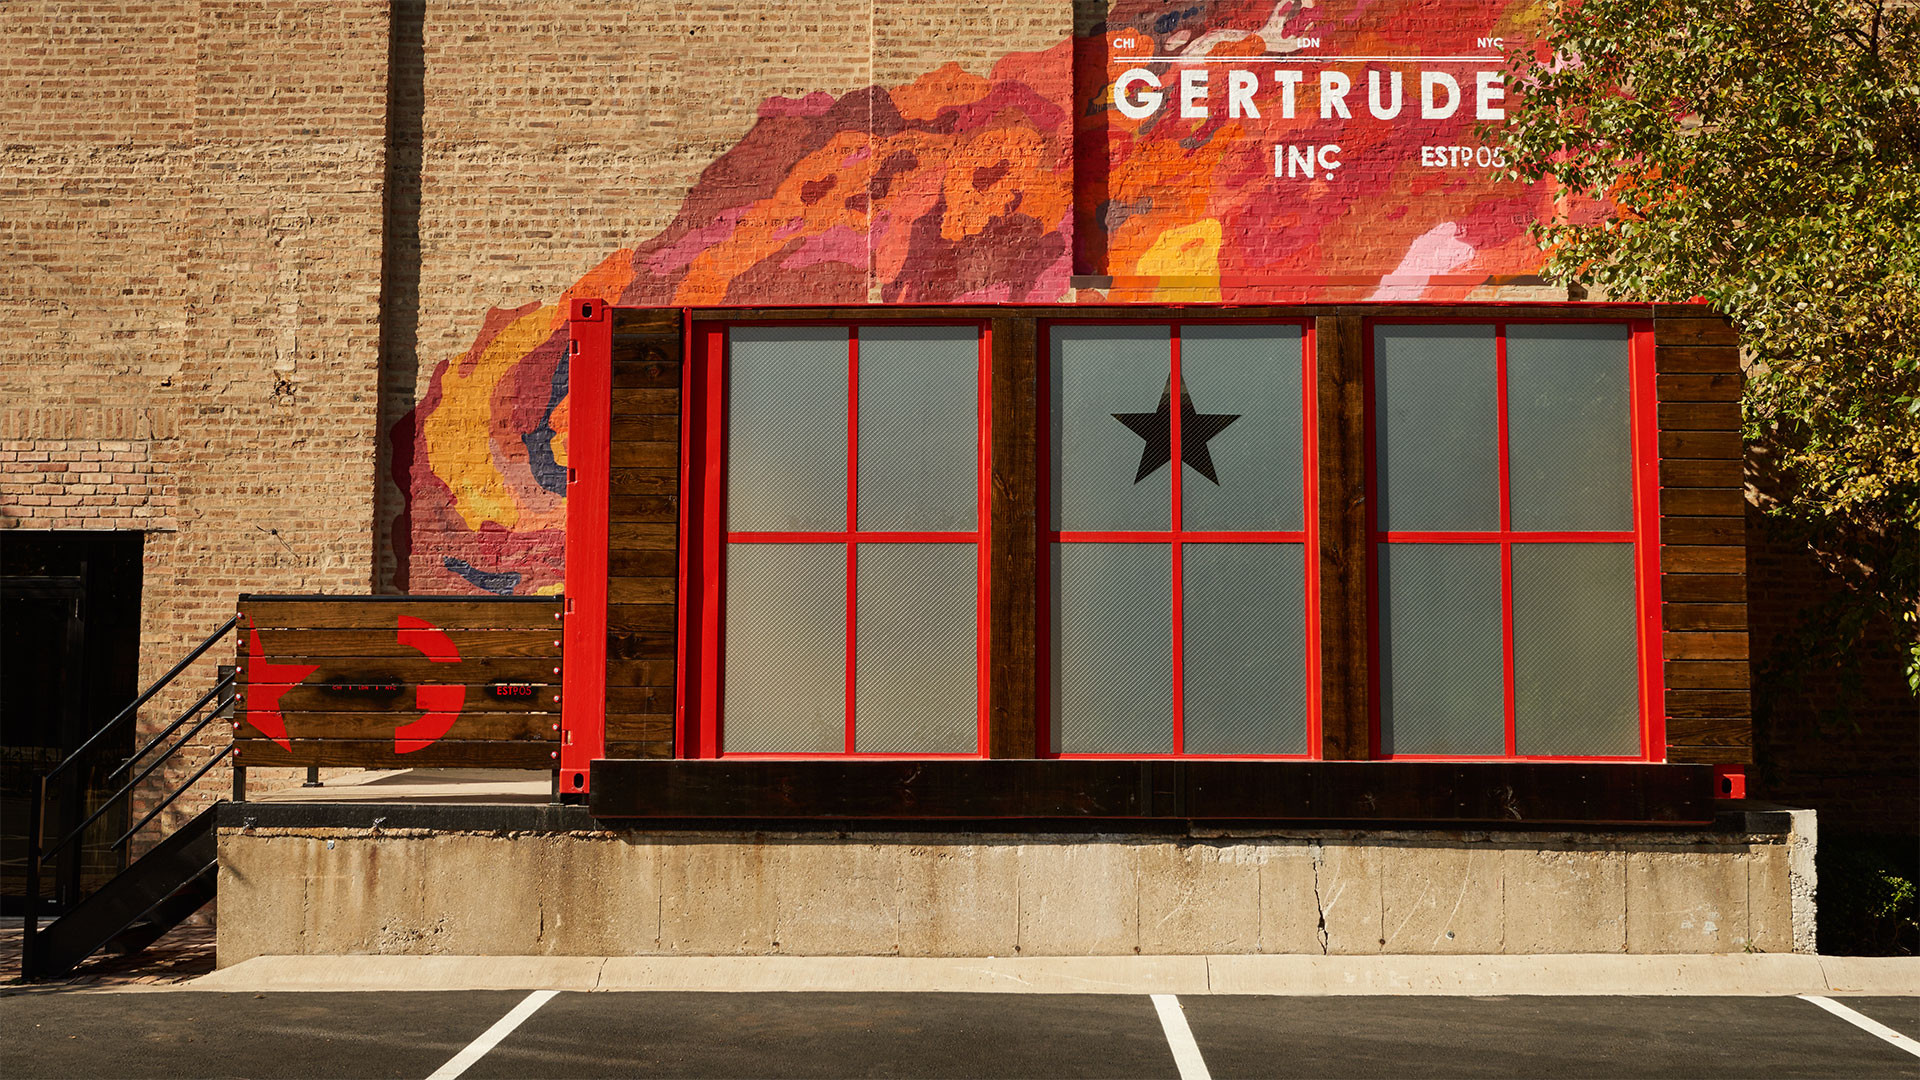 Gertrude Oz Shipping Container Entrance Exterior Front View